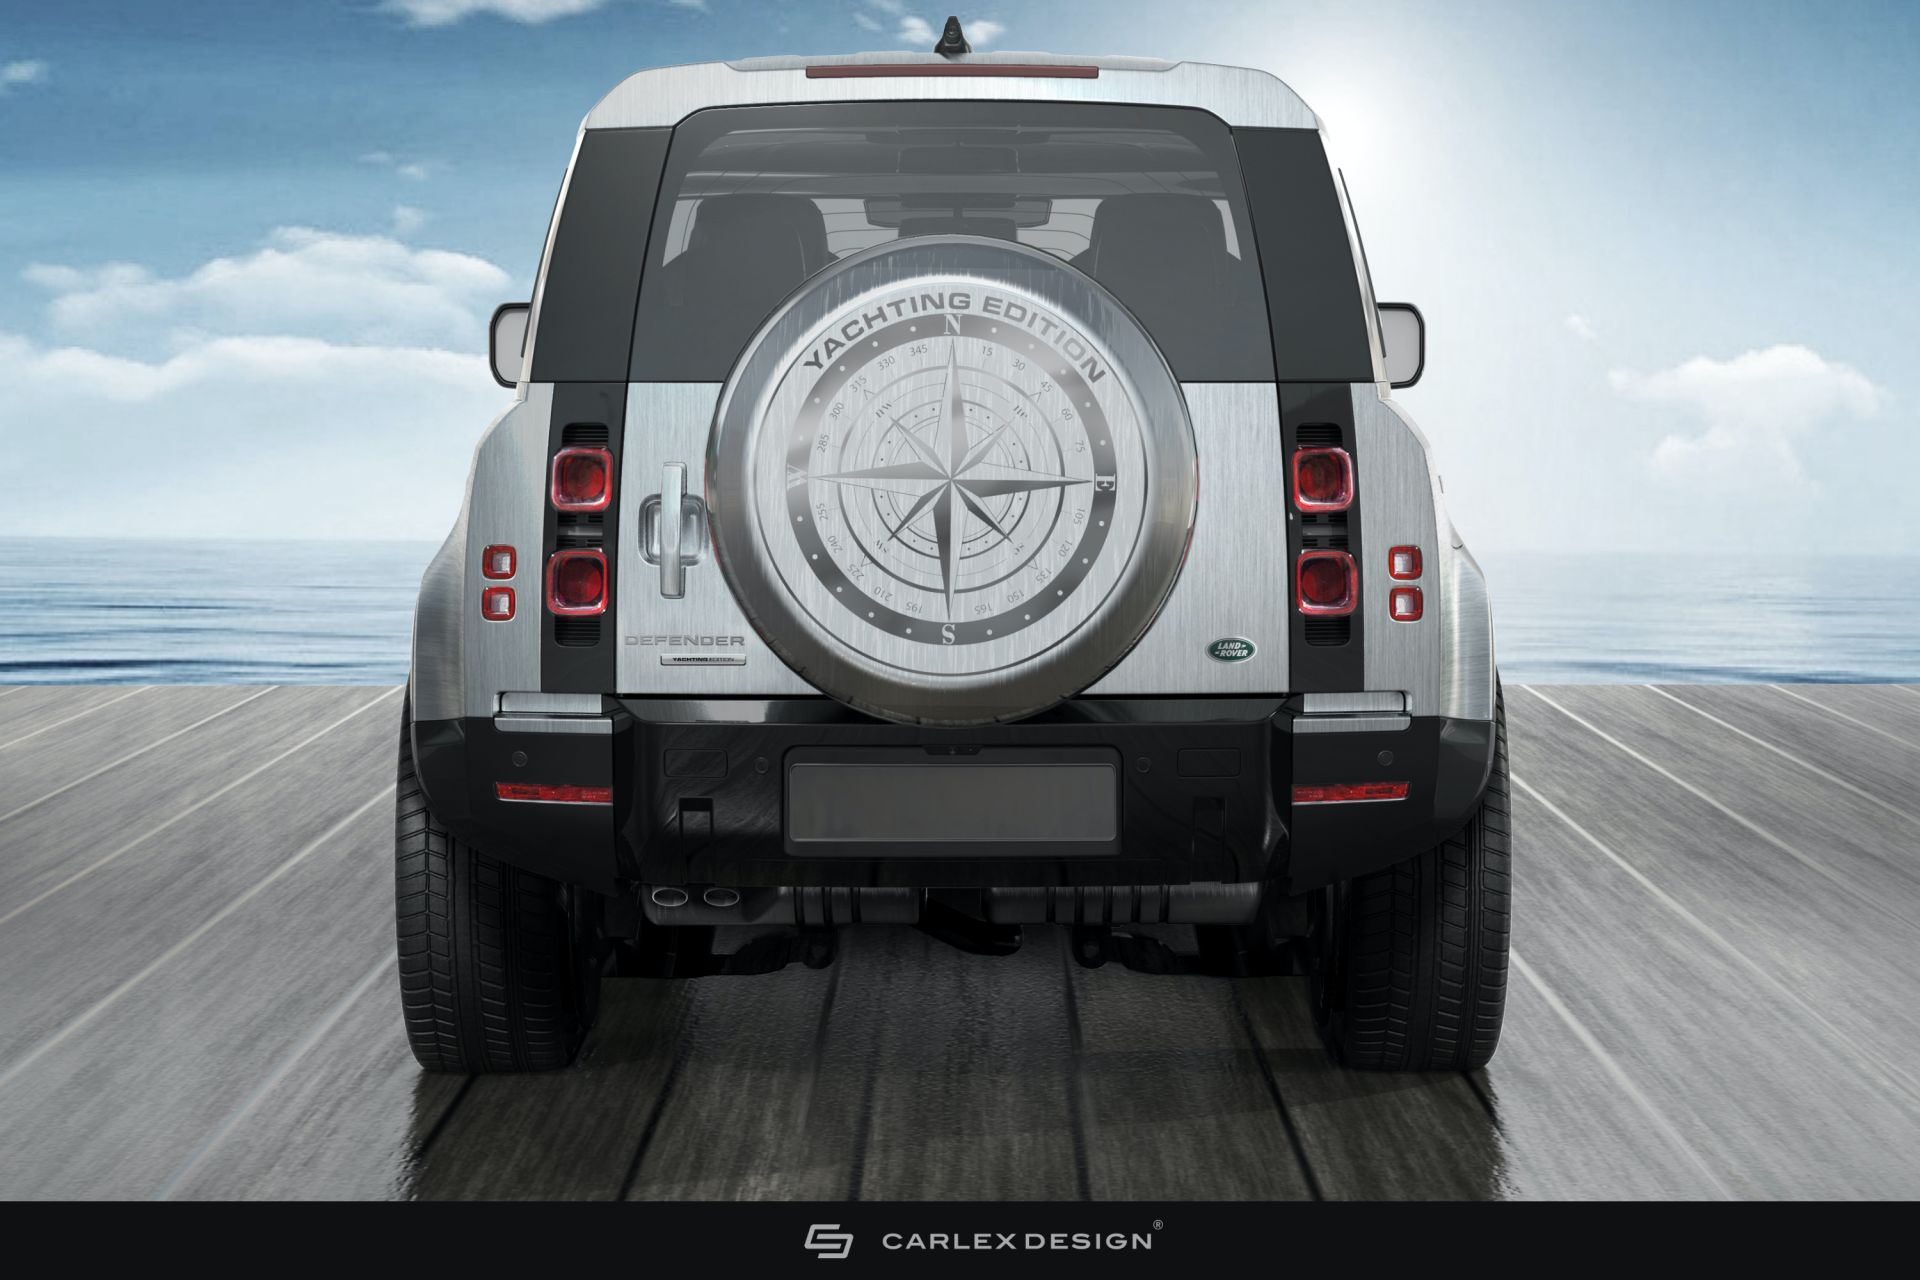 Land-Rover-Defender-Yachting-Edition-by-Carlex-Design-6